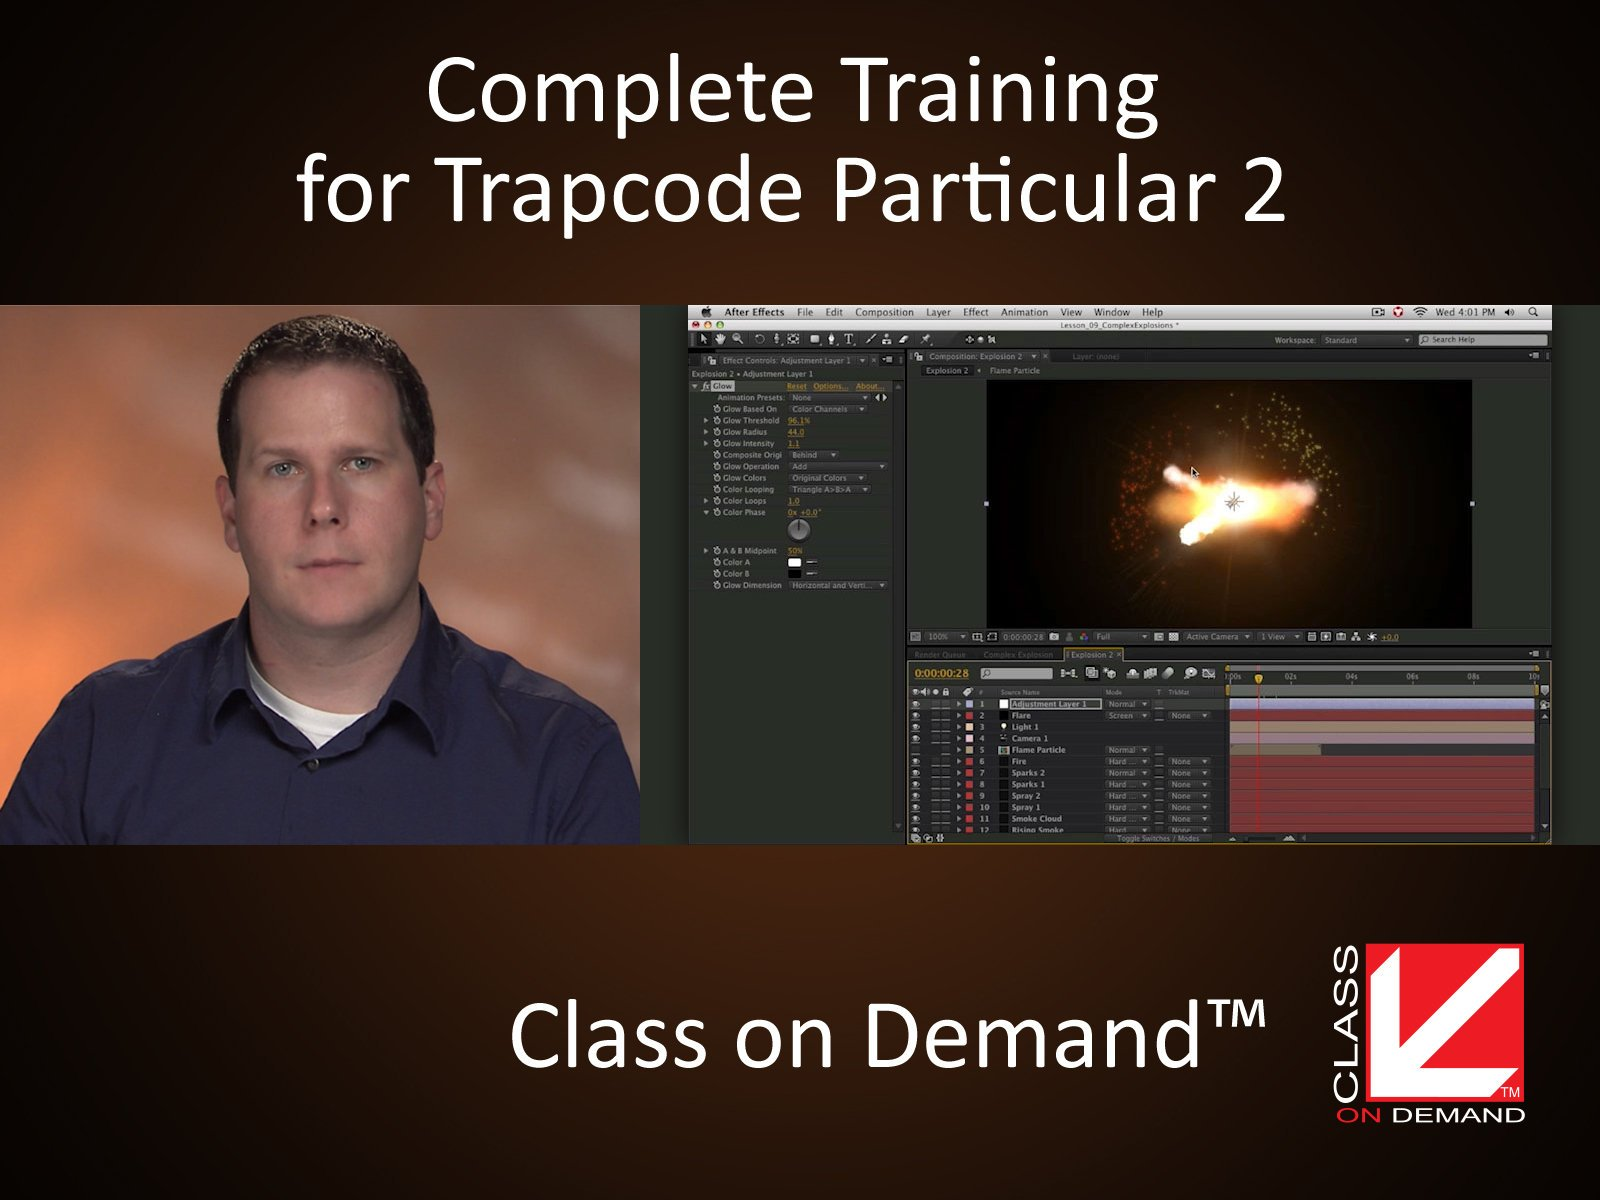 Amazon com: Watch Complete Training for RedGiant Particular 2